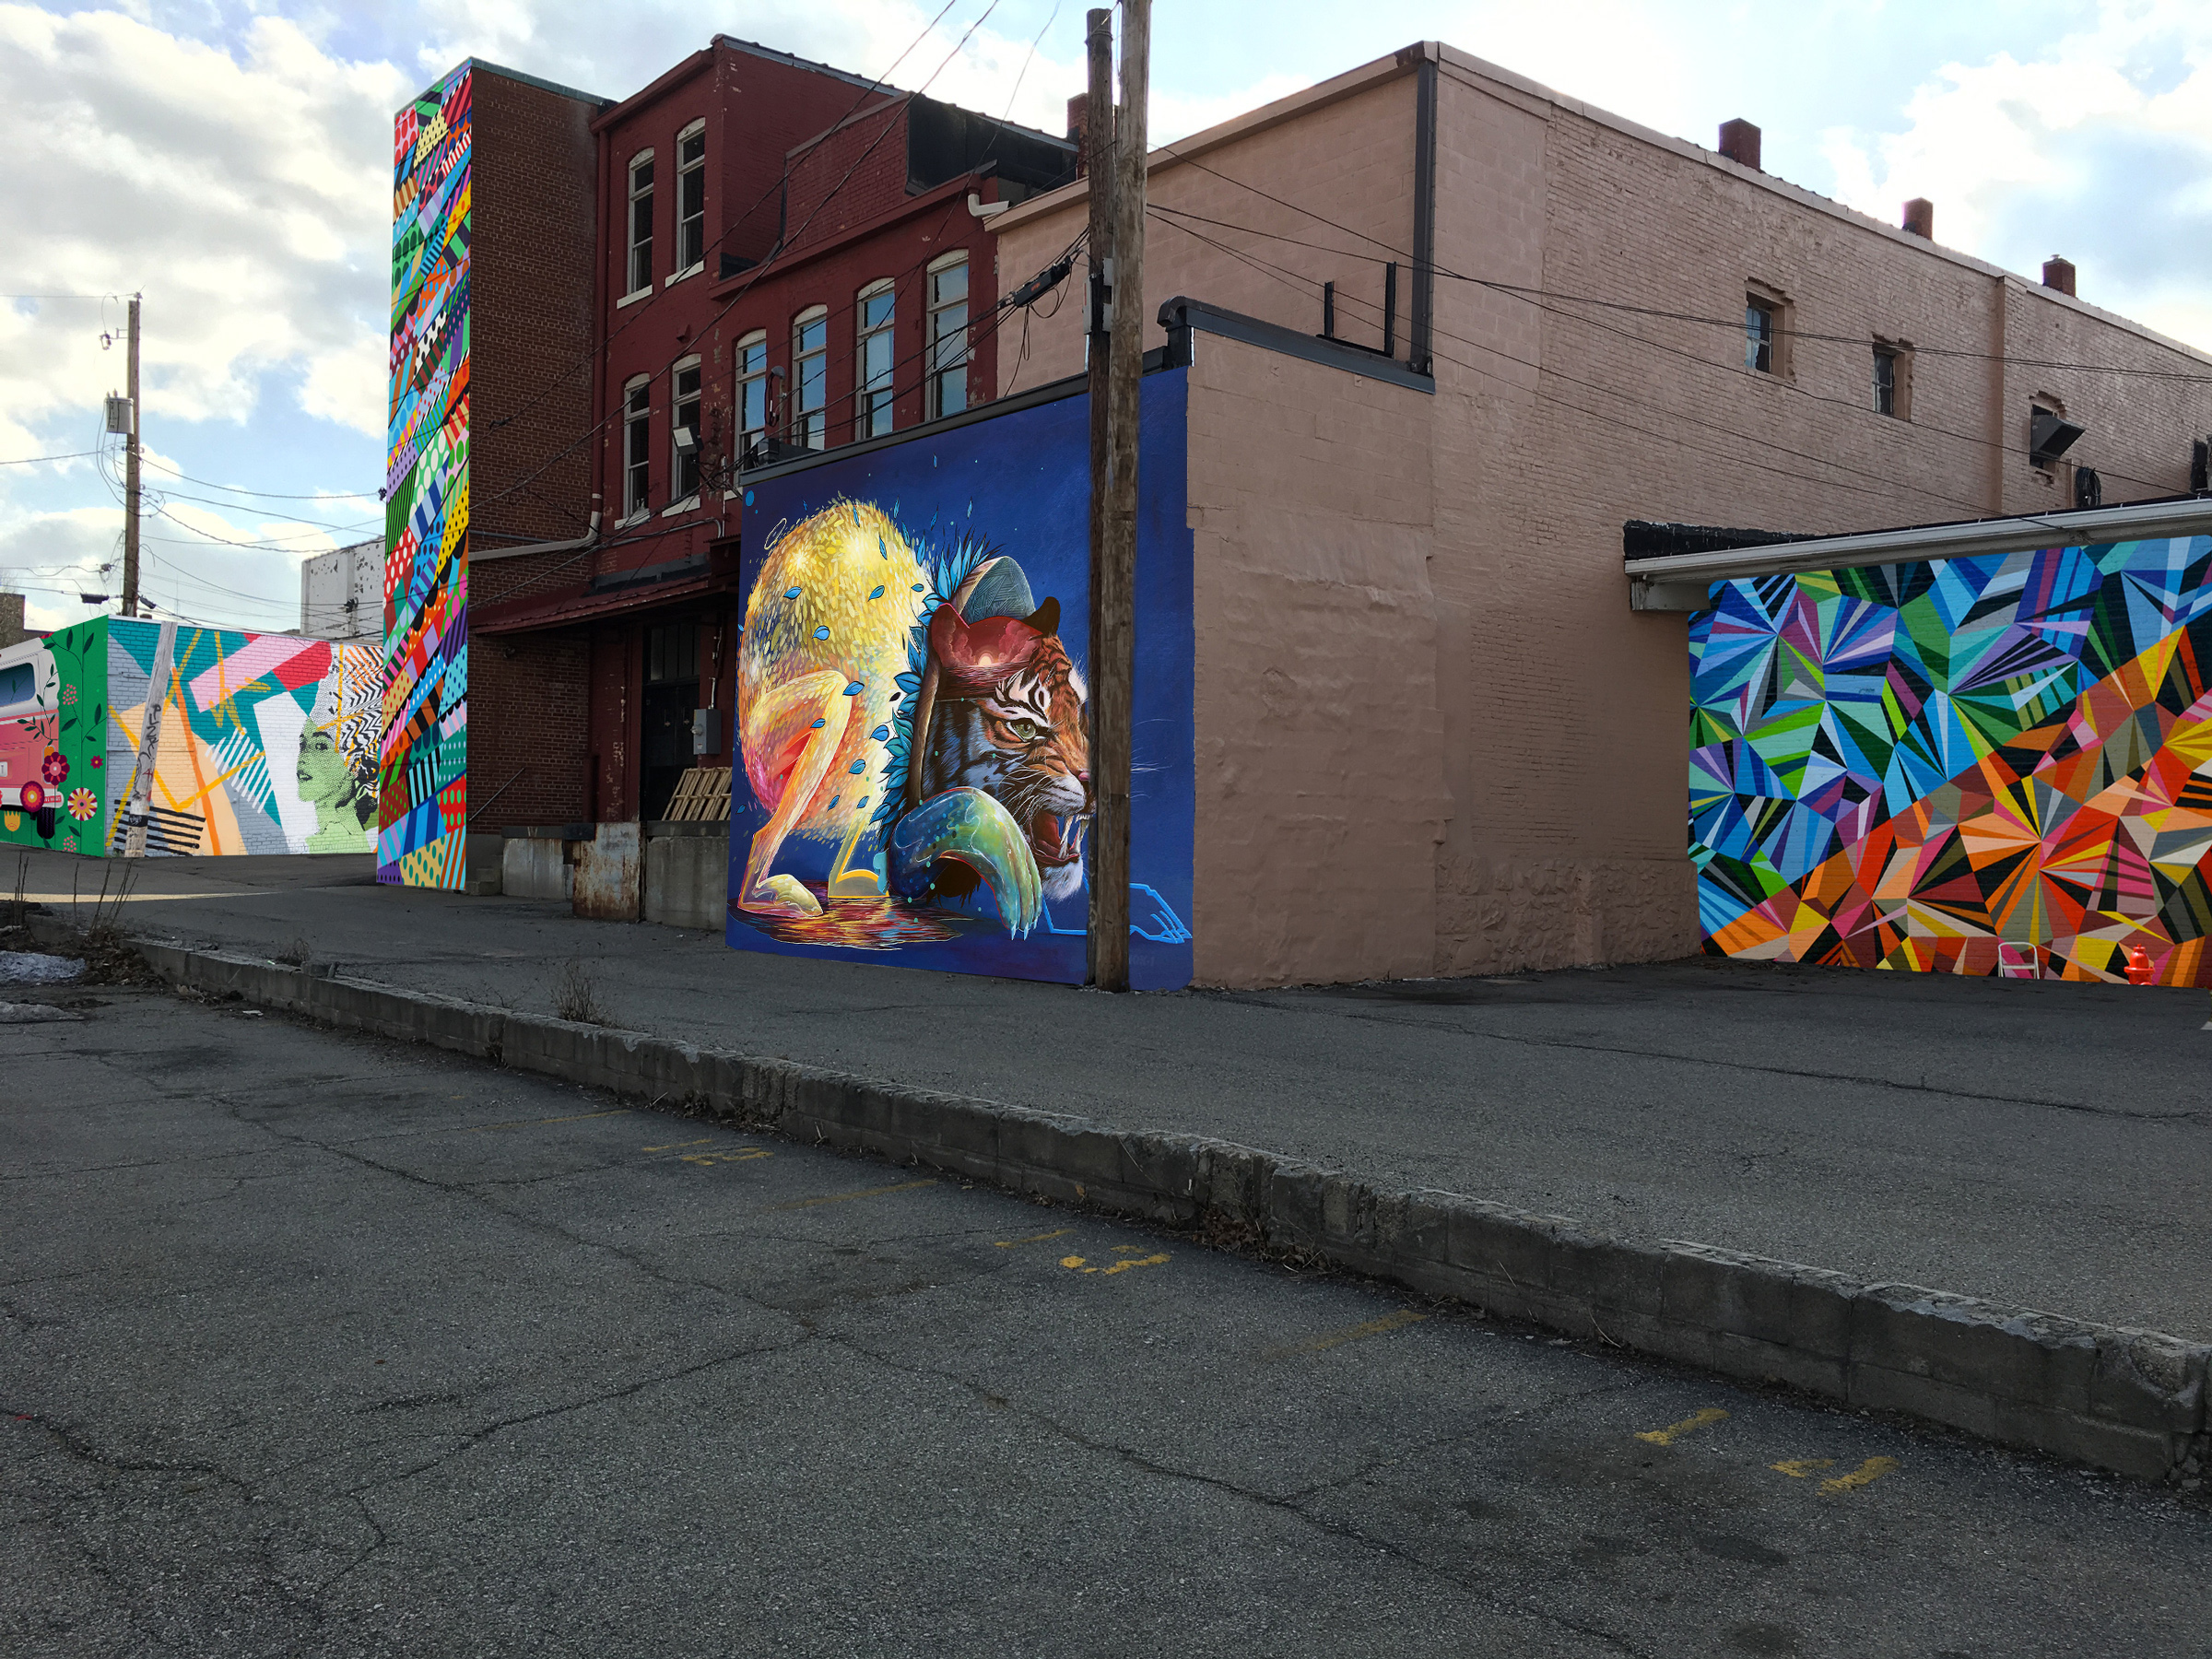 Bright Walls Mural Festival Announced in Jackson - mLive Jackson • Apr 27, 2018